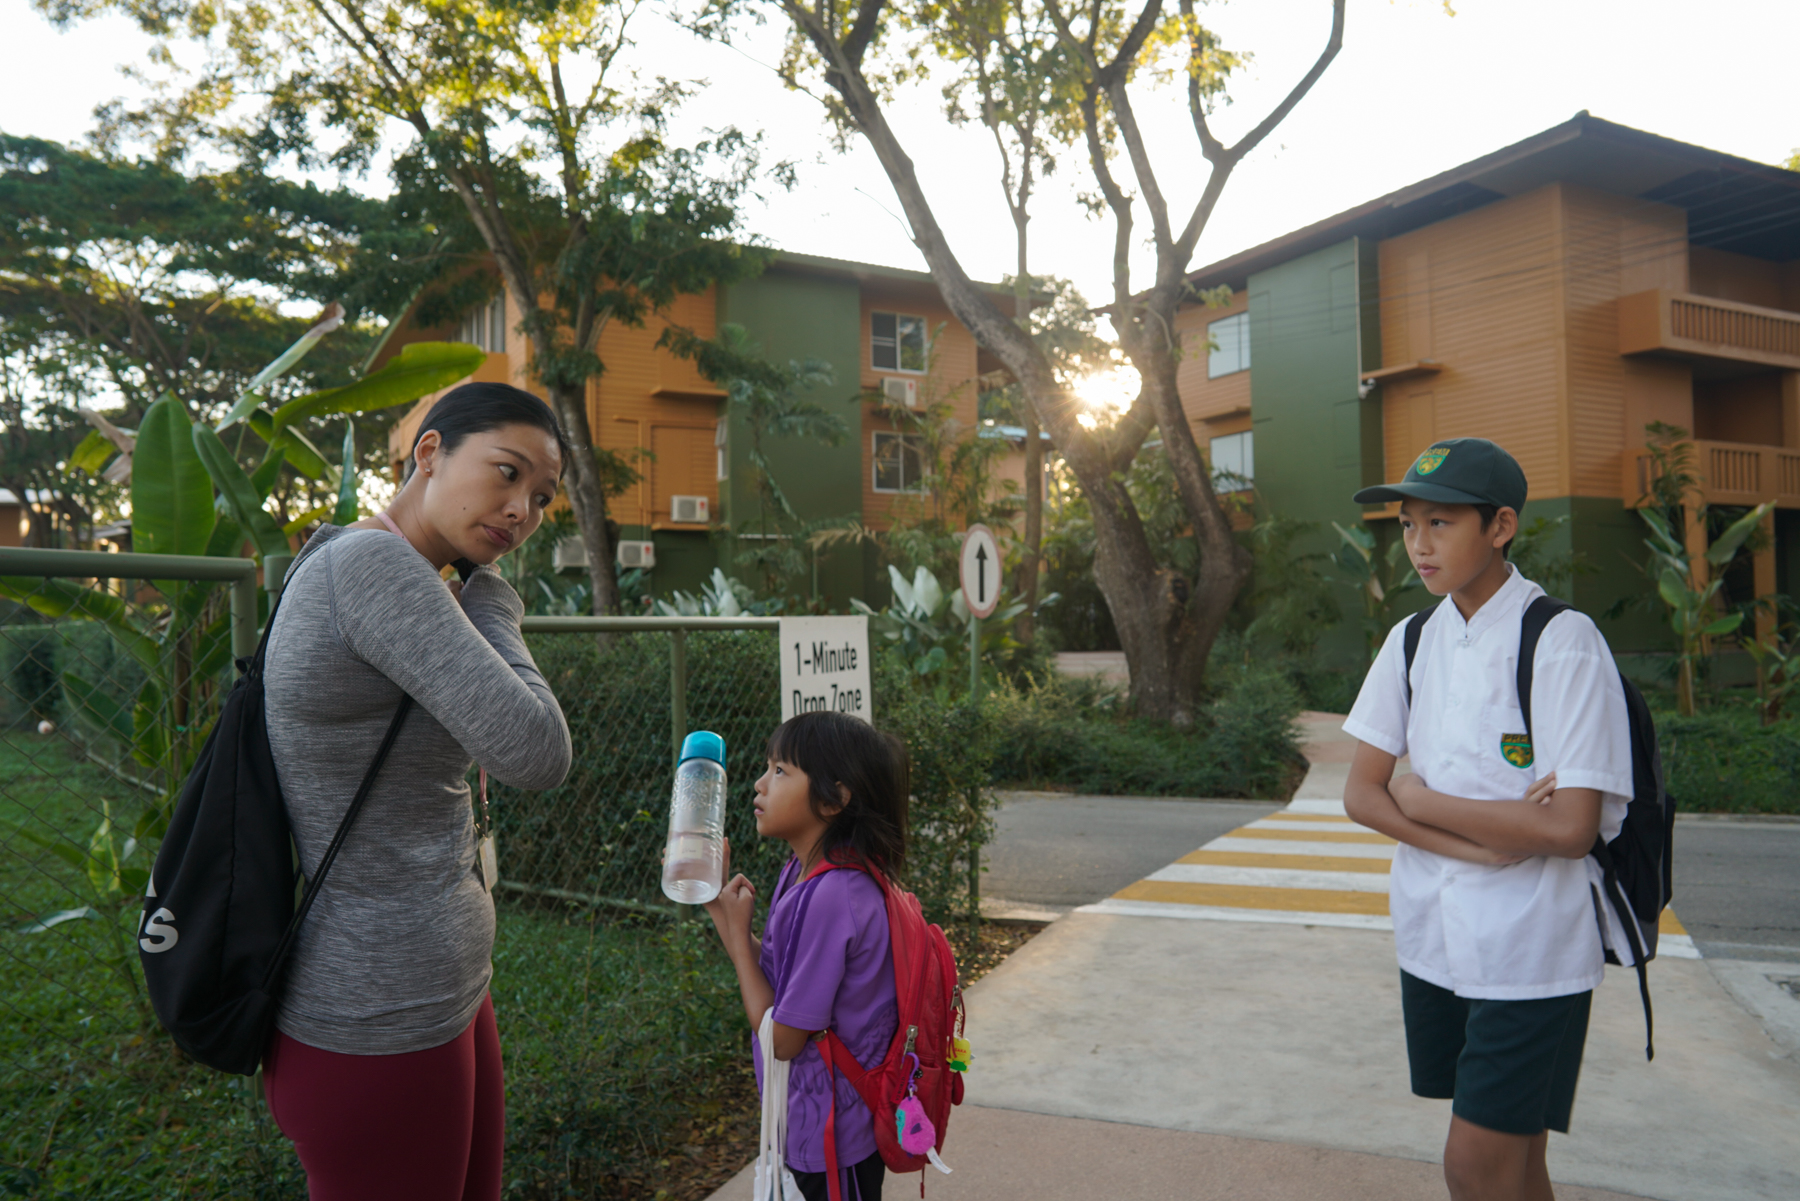 Ding Dian, from Huizhou, Guangdong province, sends her two children off to school, January 16, 2019. Both of them attend Prem Tinsulanonda International School, whose campus features a golf center and a tennis center.